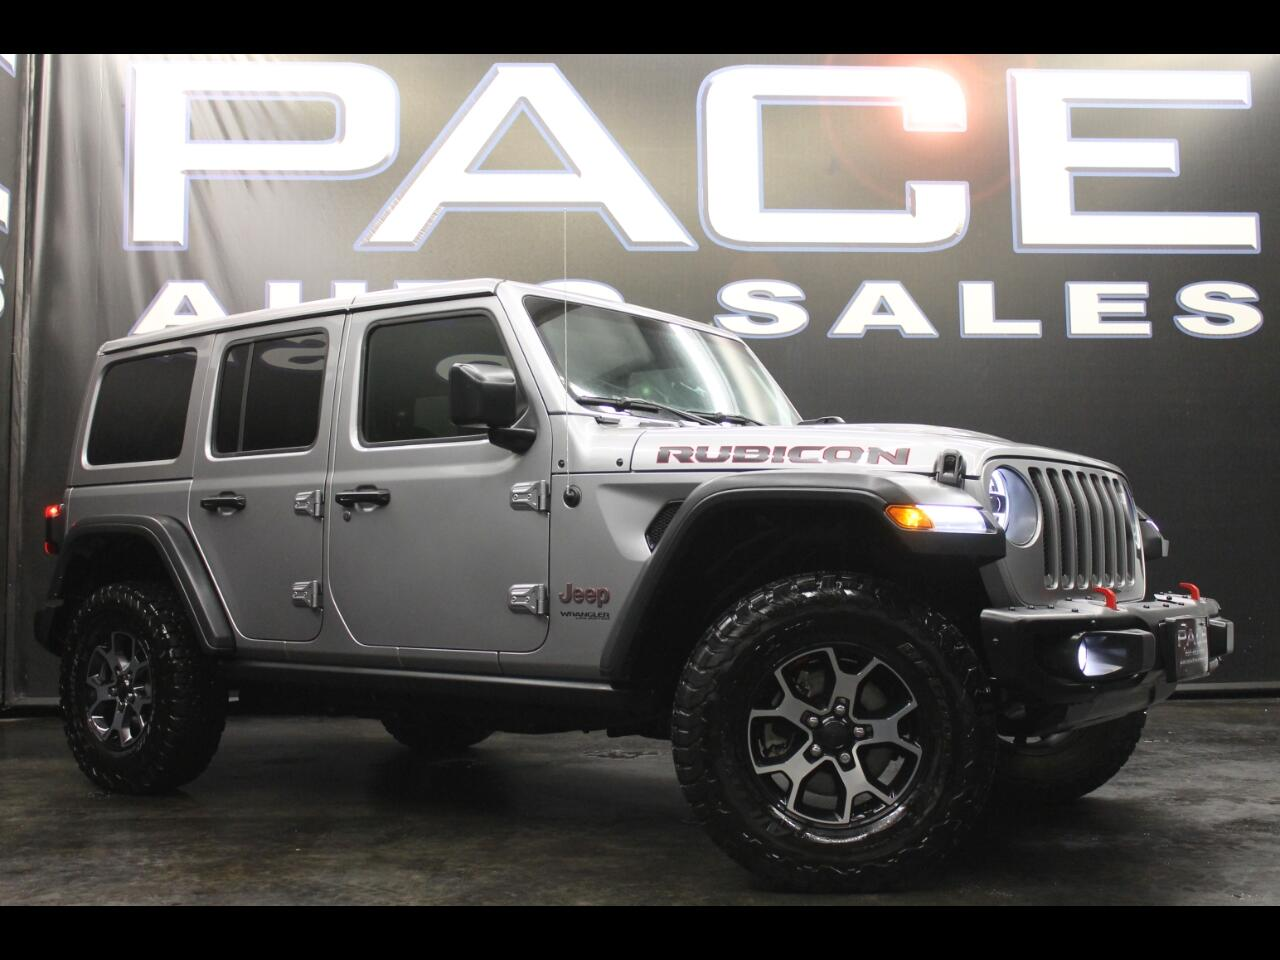 2018 Jeep Wrangler Unlimited Rubicon 4x4 Leveled